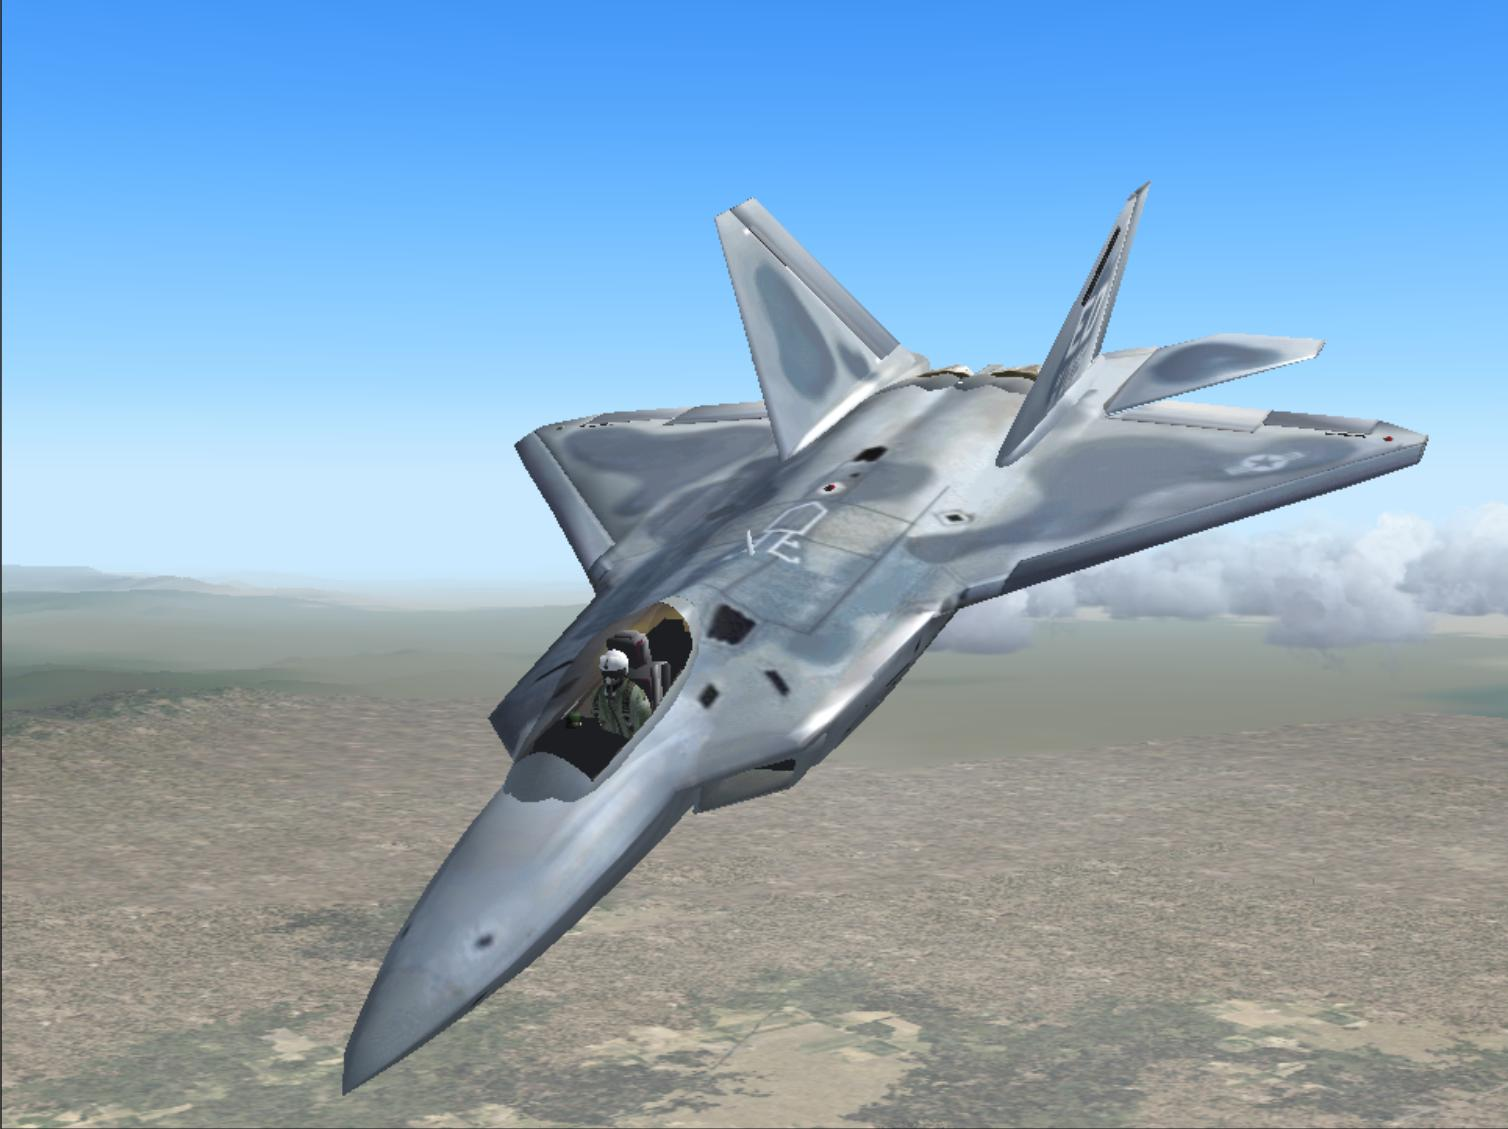 22 Raptor 10932 Hd Wallpapers in Aircraft   Imagescicom 1508x1129